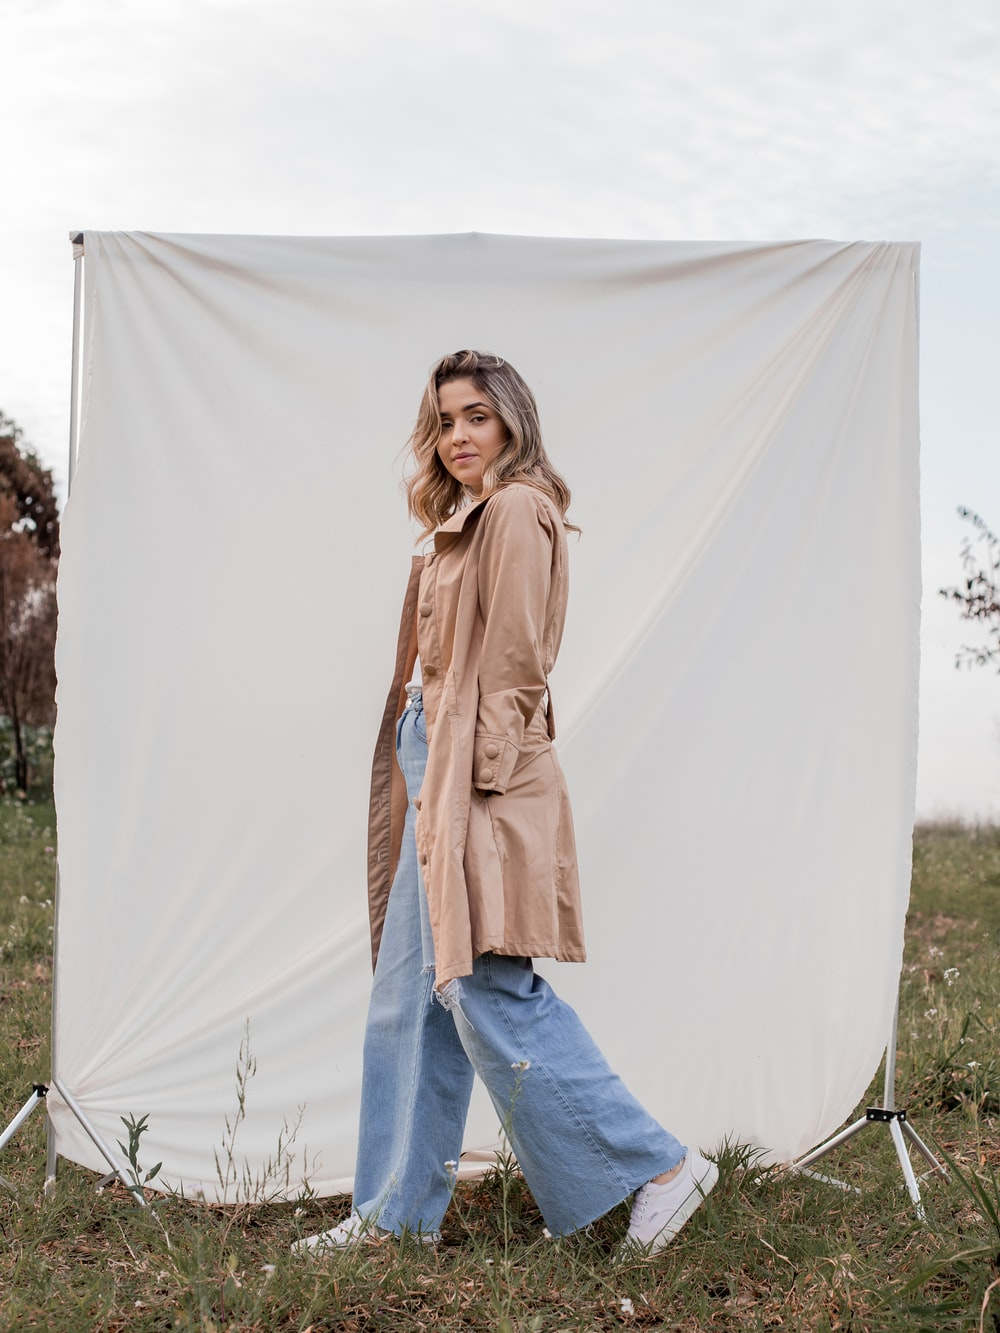 woman in brown coat and blue denim jeans standing on white textile